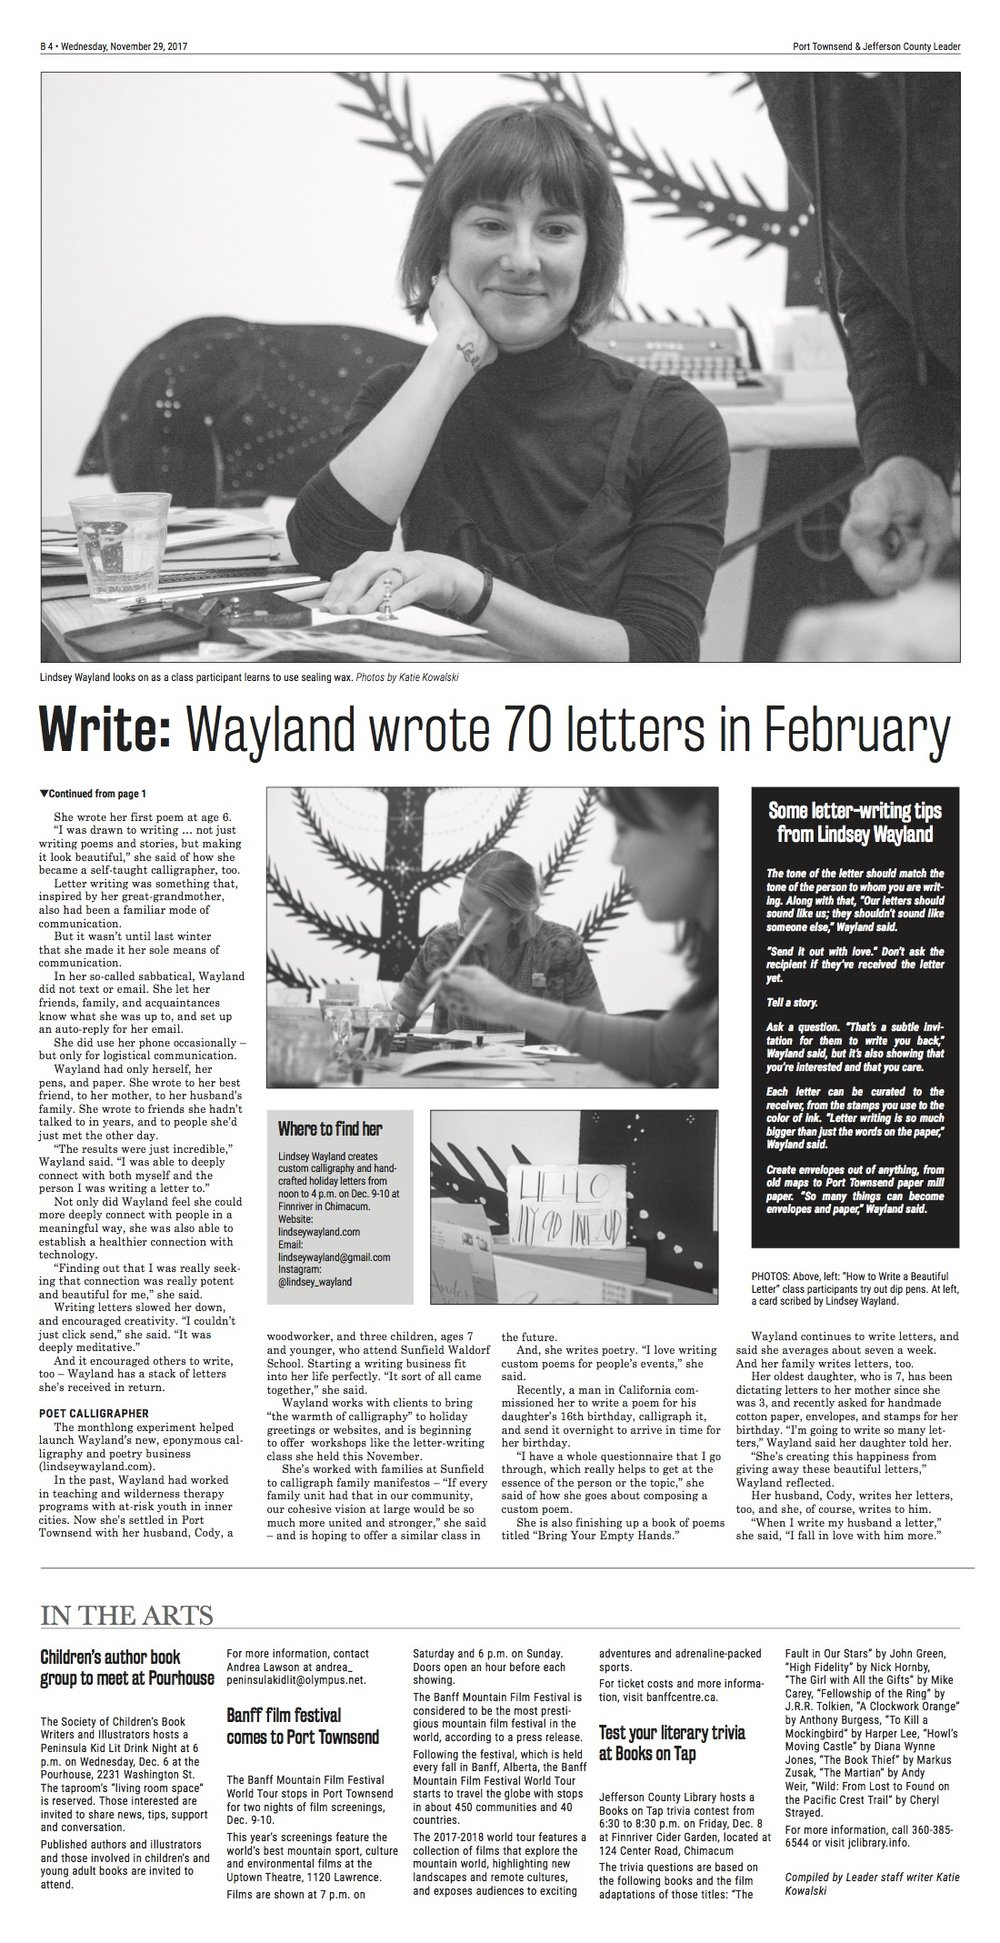 lindsey wayland press 2 11/29/17